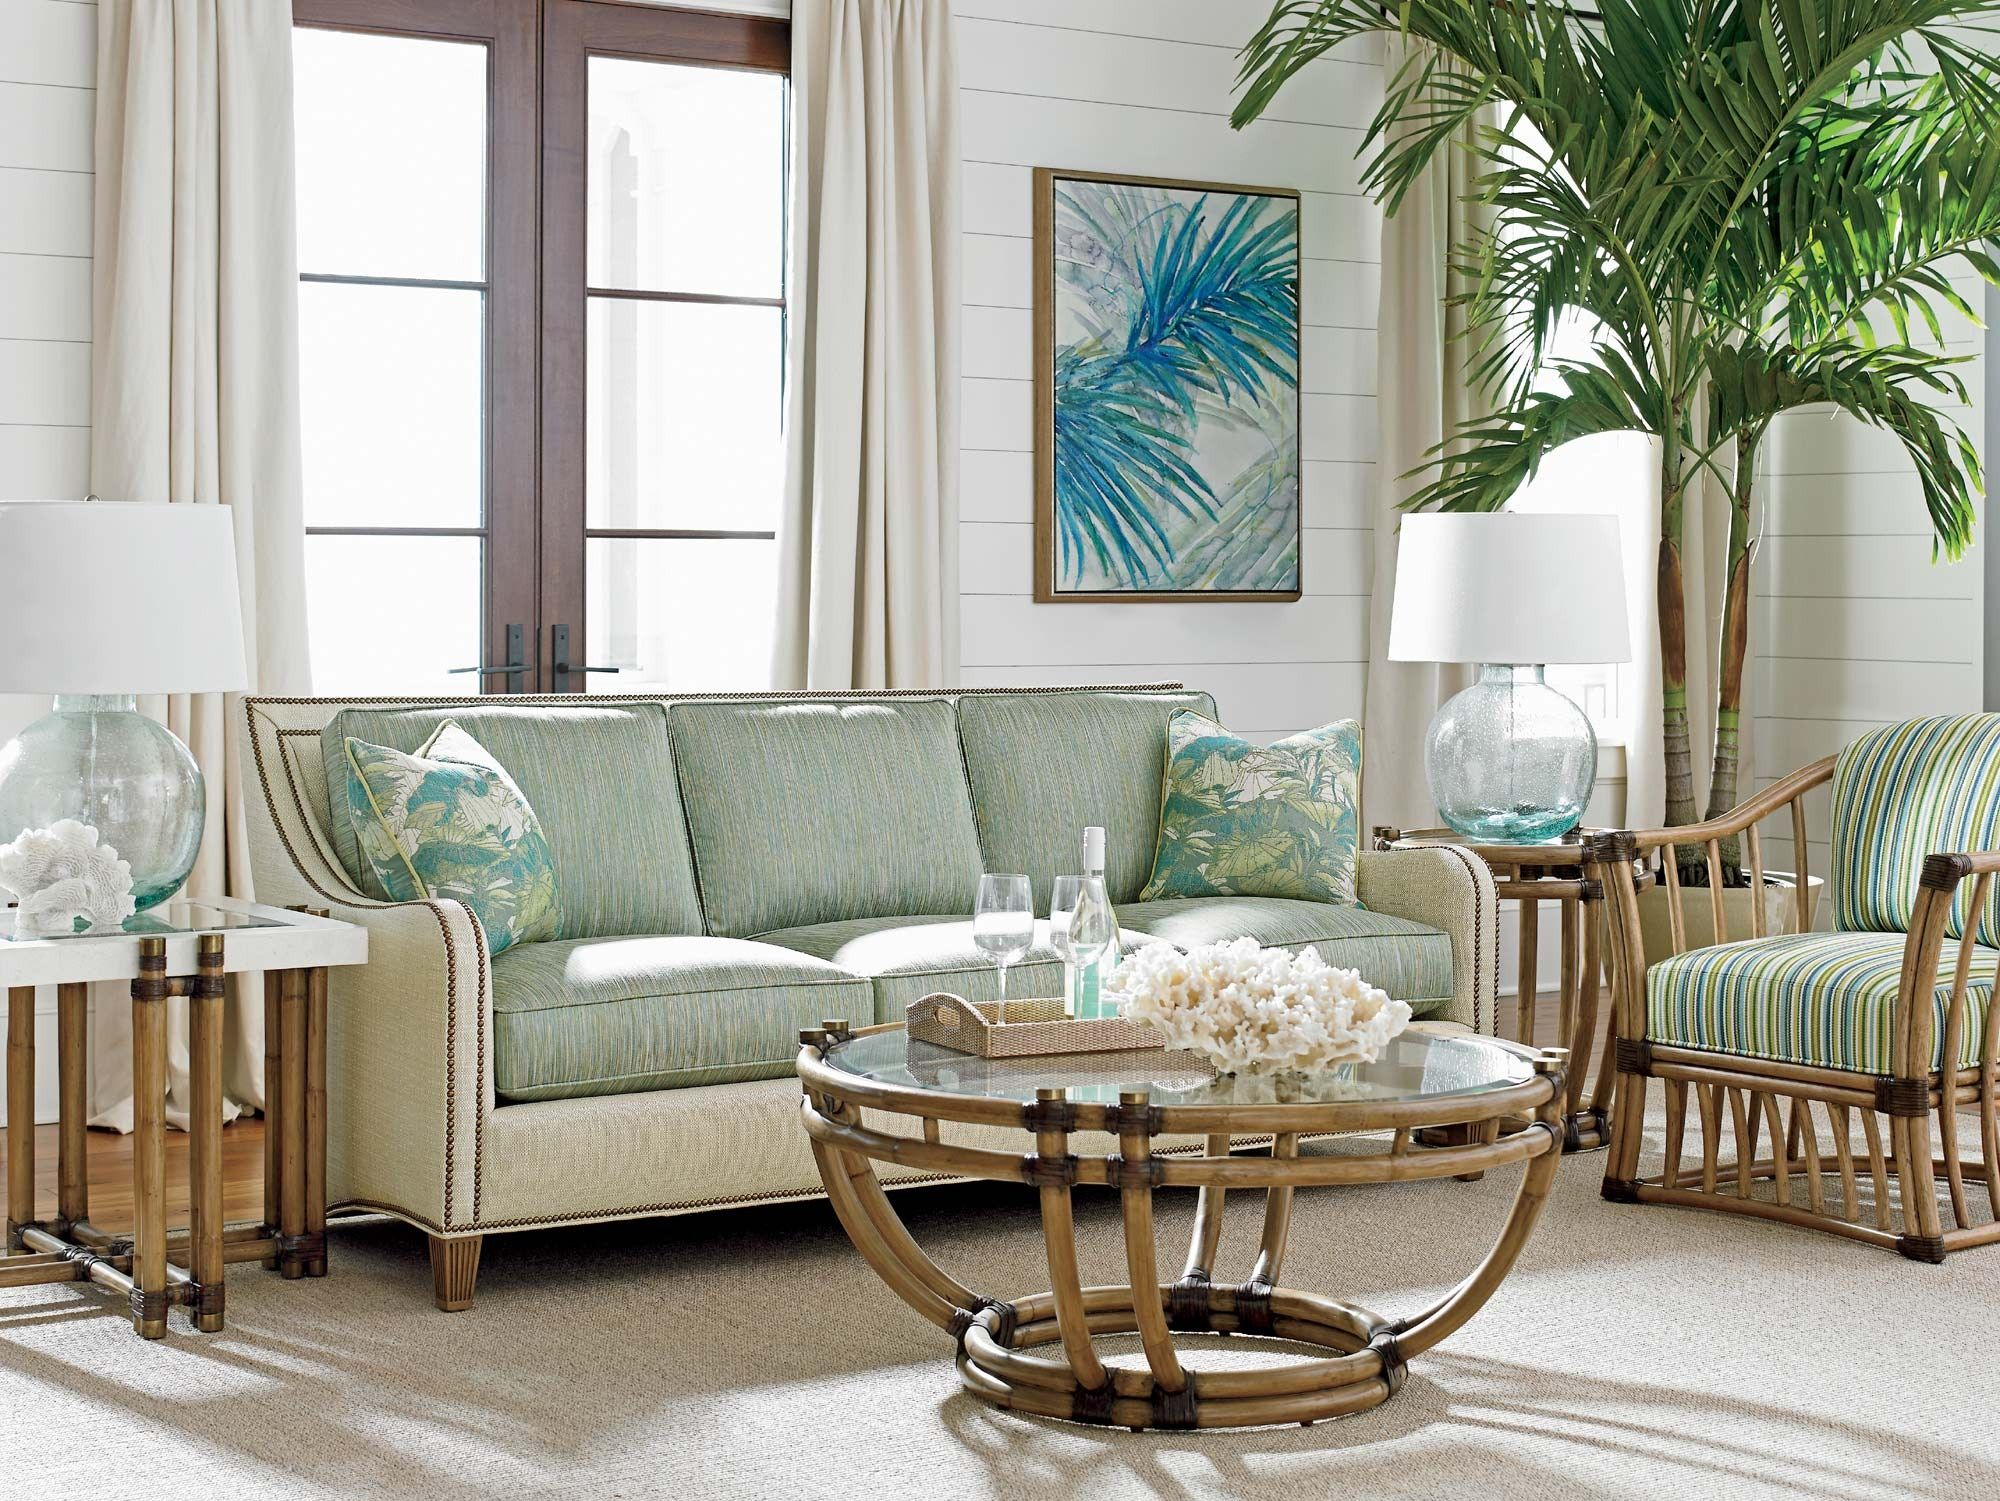 tommy bahama beach chair uk dining set of 6 twin palms koko sofa in white green home